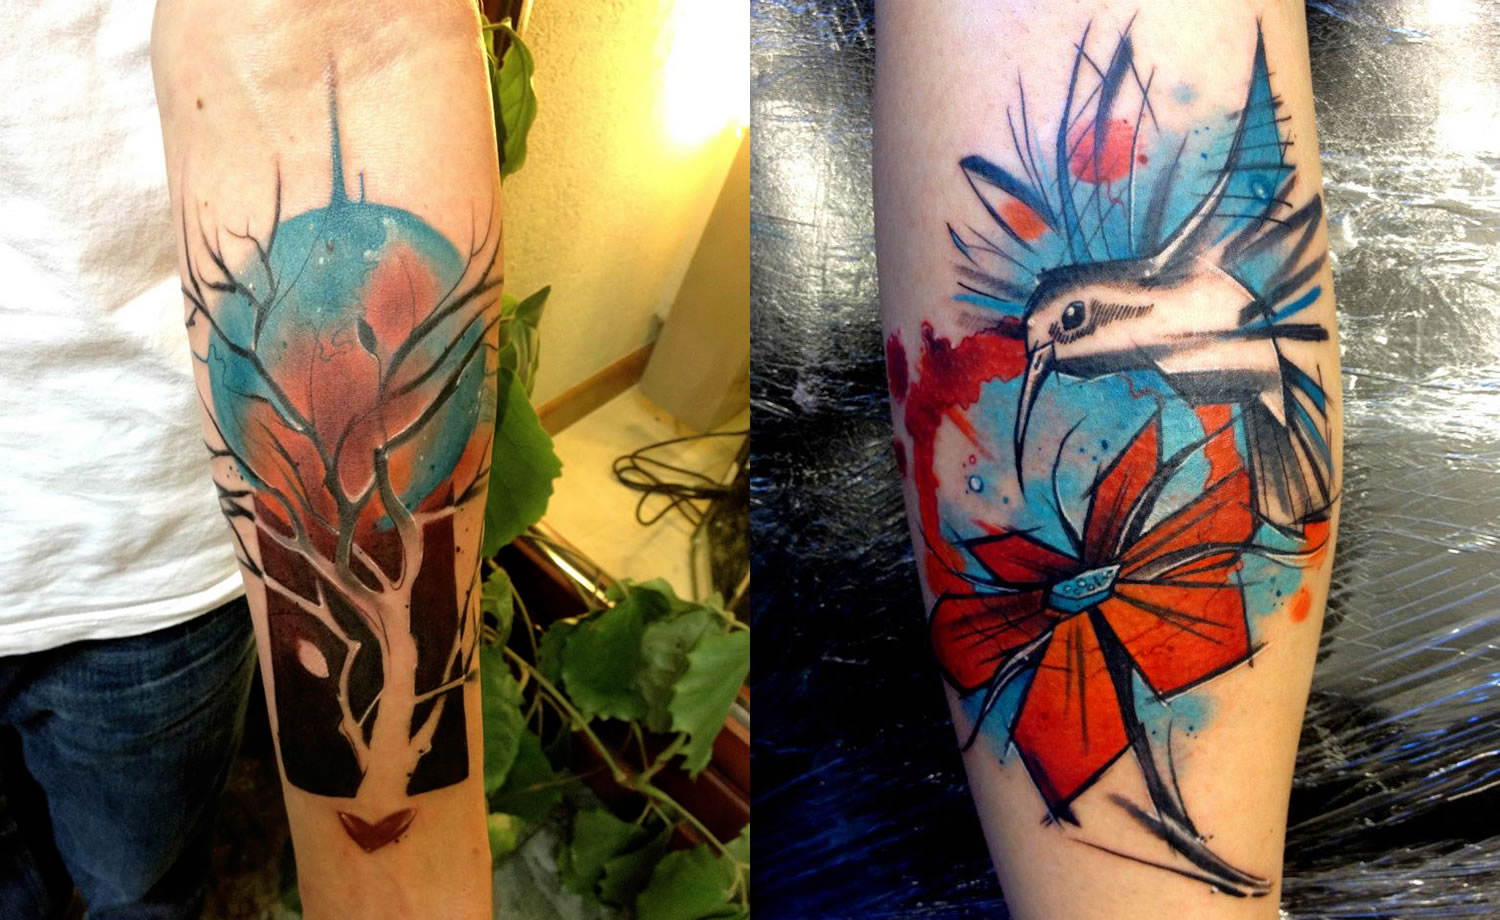 tree and bird with flowers tattoos by Lukasz Bam Kaczmarek